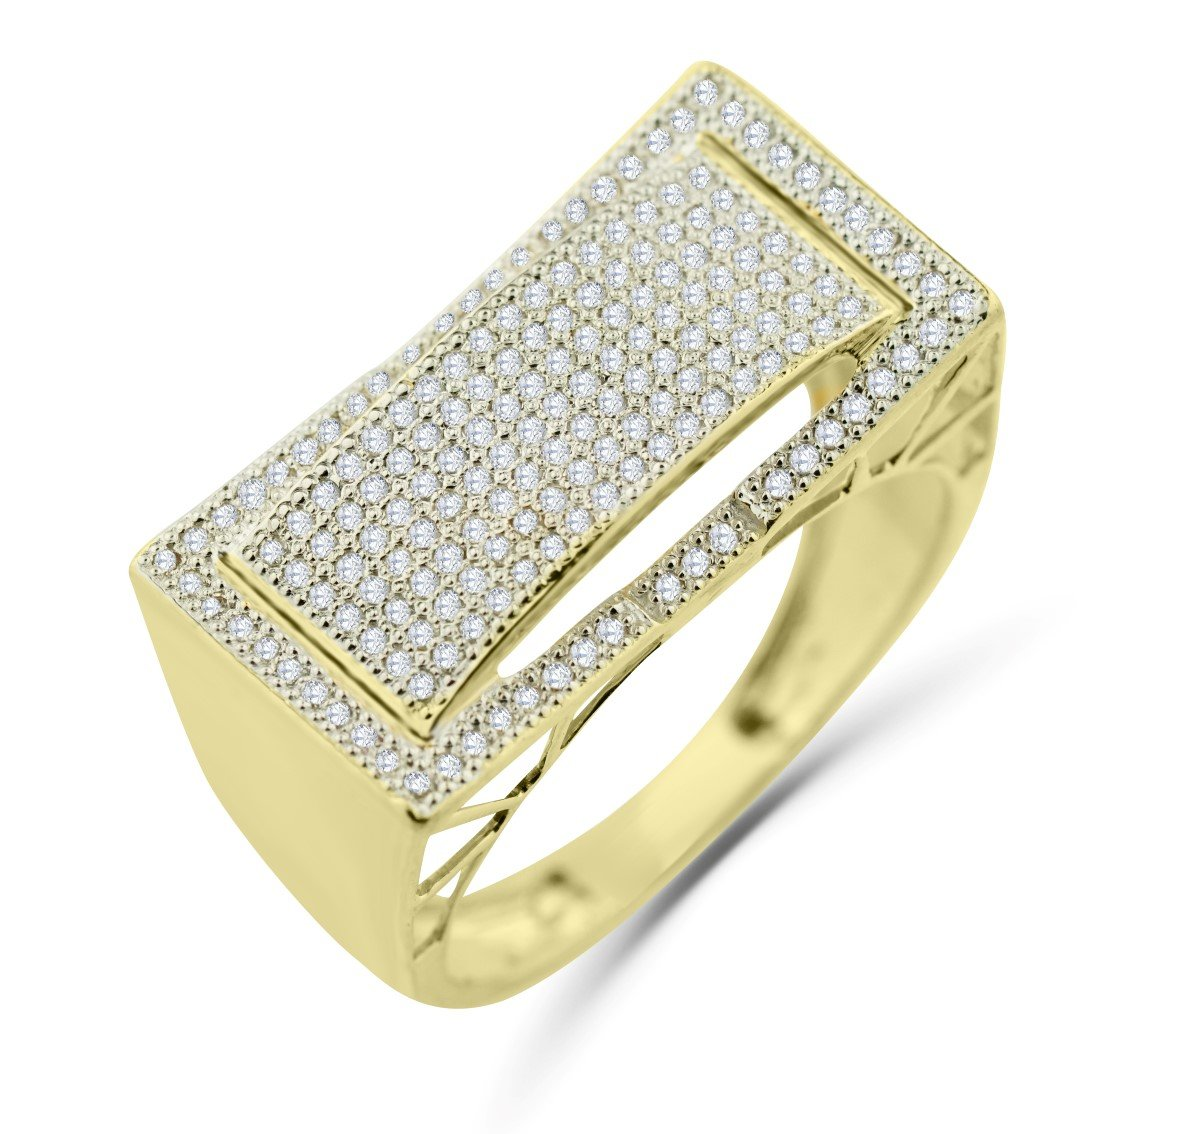 10K Gold Mens Ring Diamond Band Pinky or Fashion Ring Wide 12mm 1/2ctw Diamond